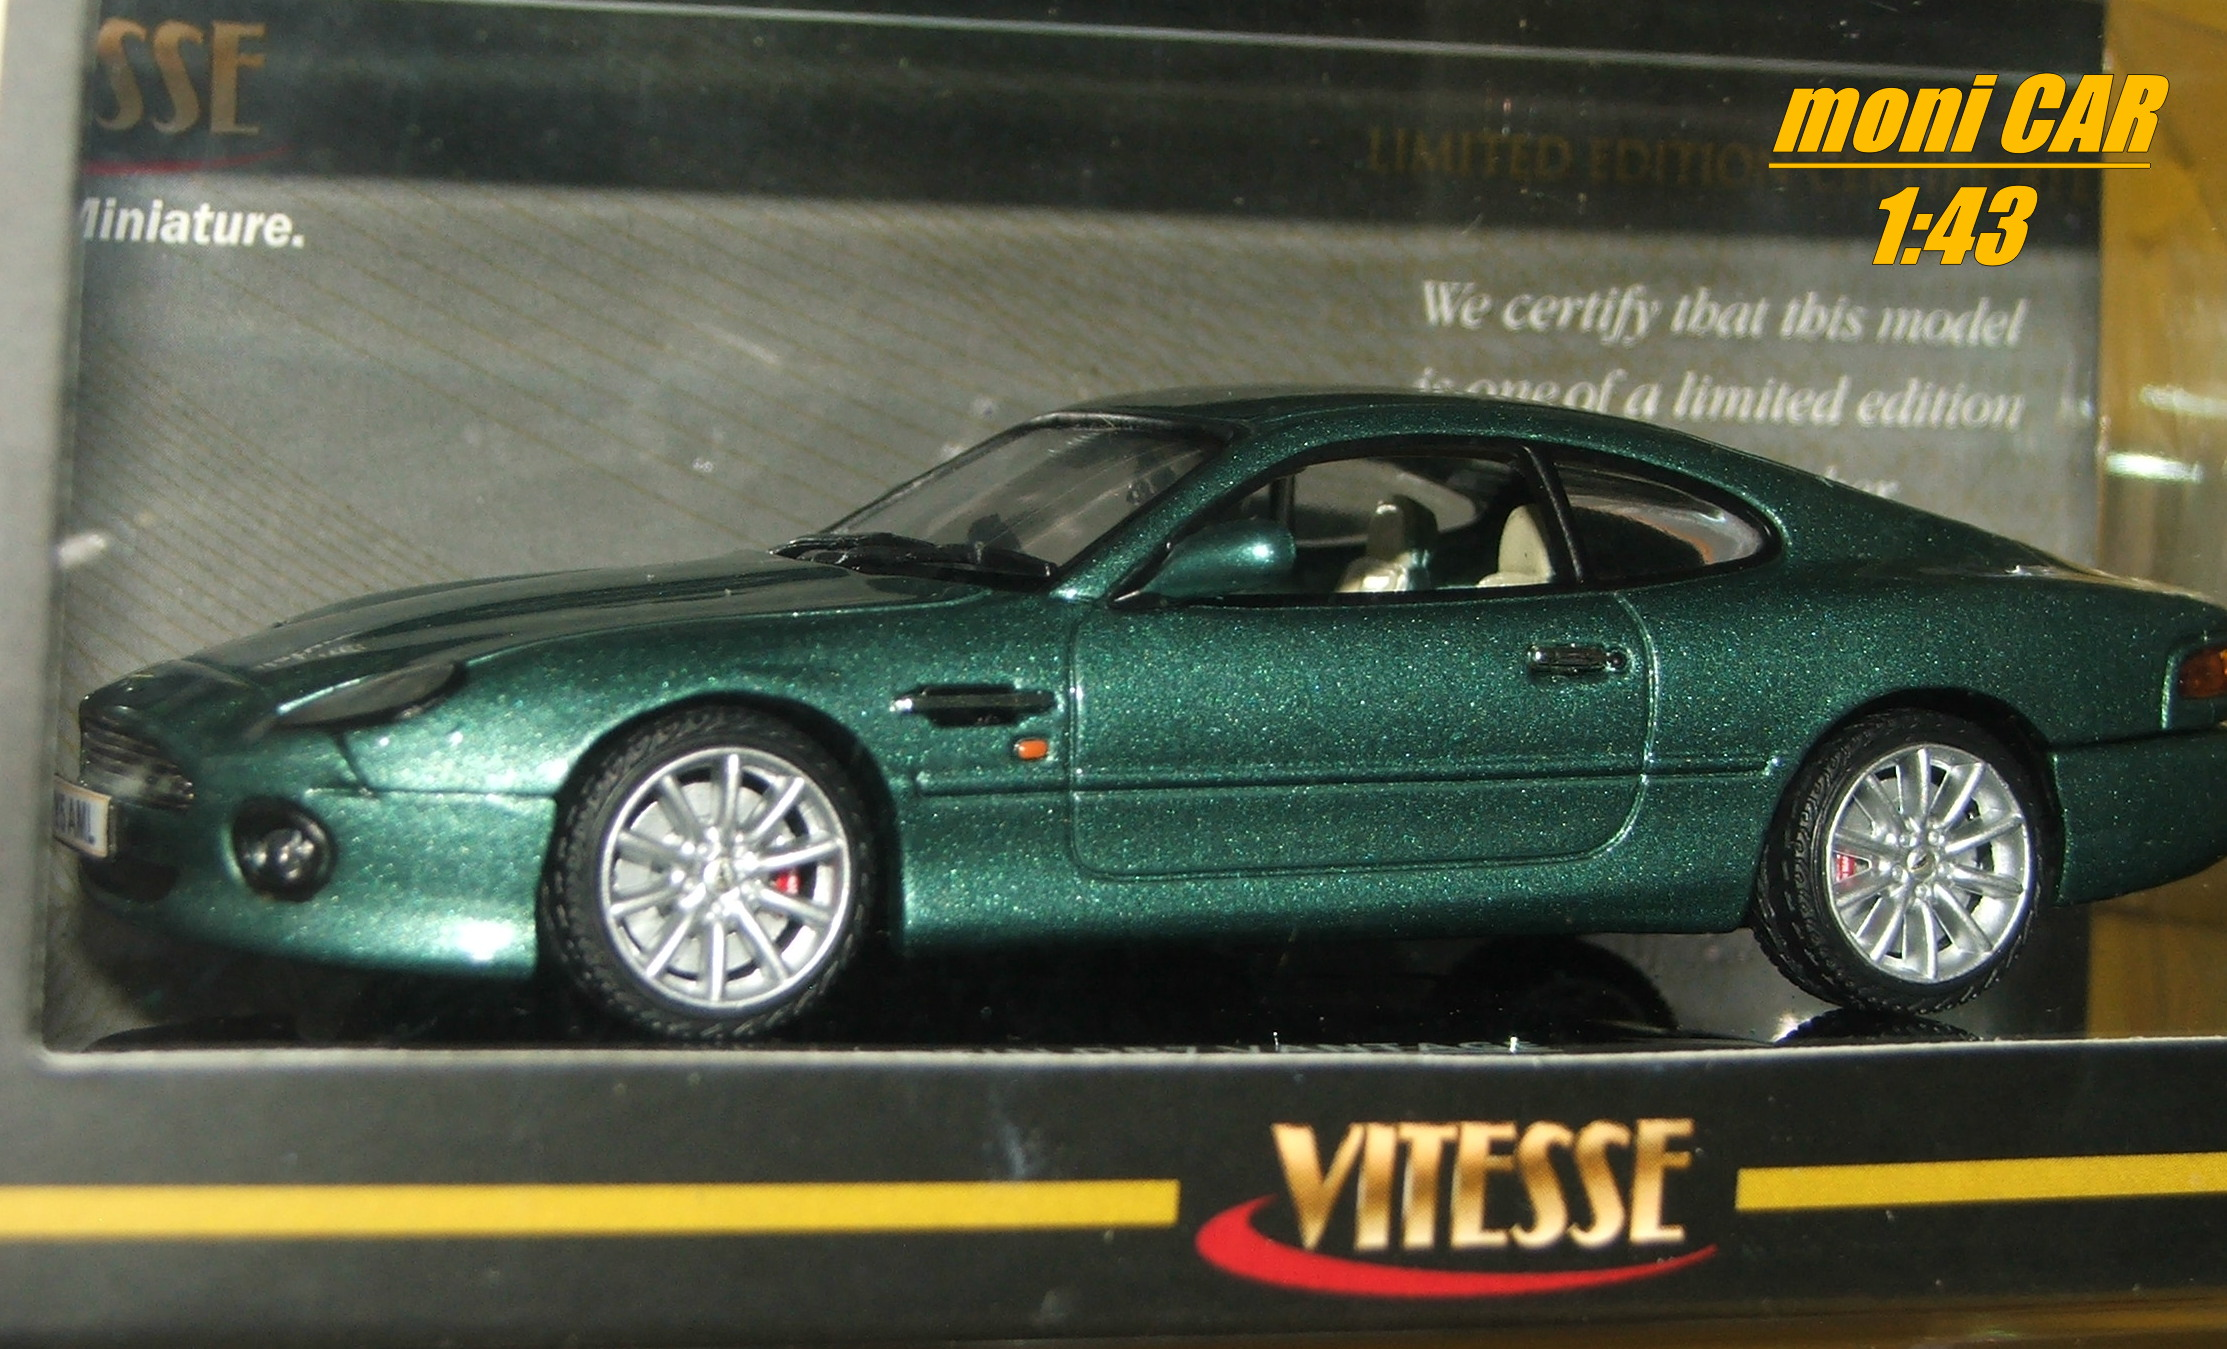 ASTON MARTIN DB7 Vantage 2002 (AM Racing Green) (1:43) VITESSE